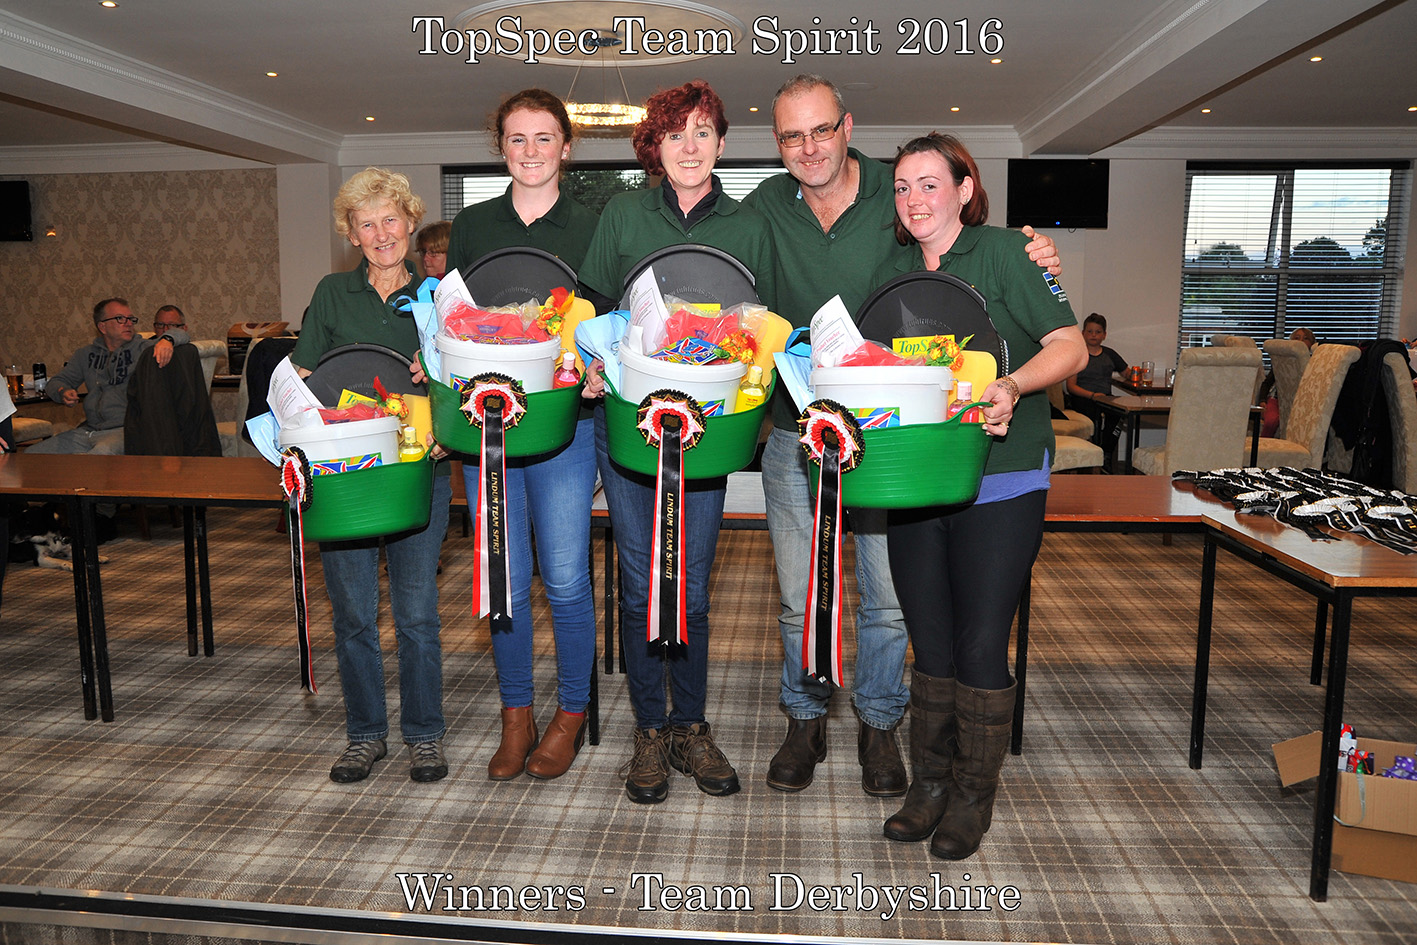 Enduro Team Spirit winners Derbyshire - TopSpec Lindum Spirit 2016 A Great Success